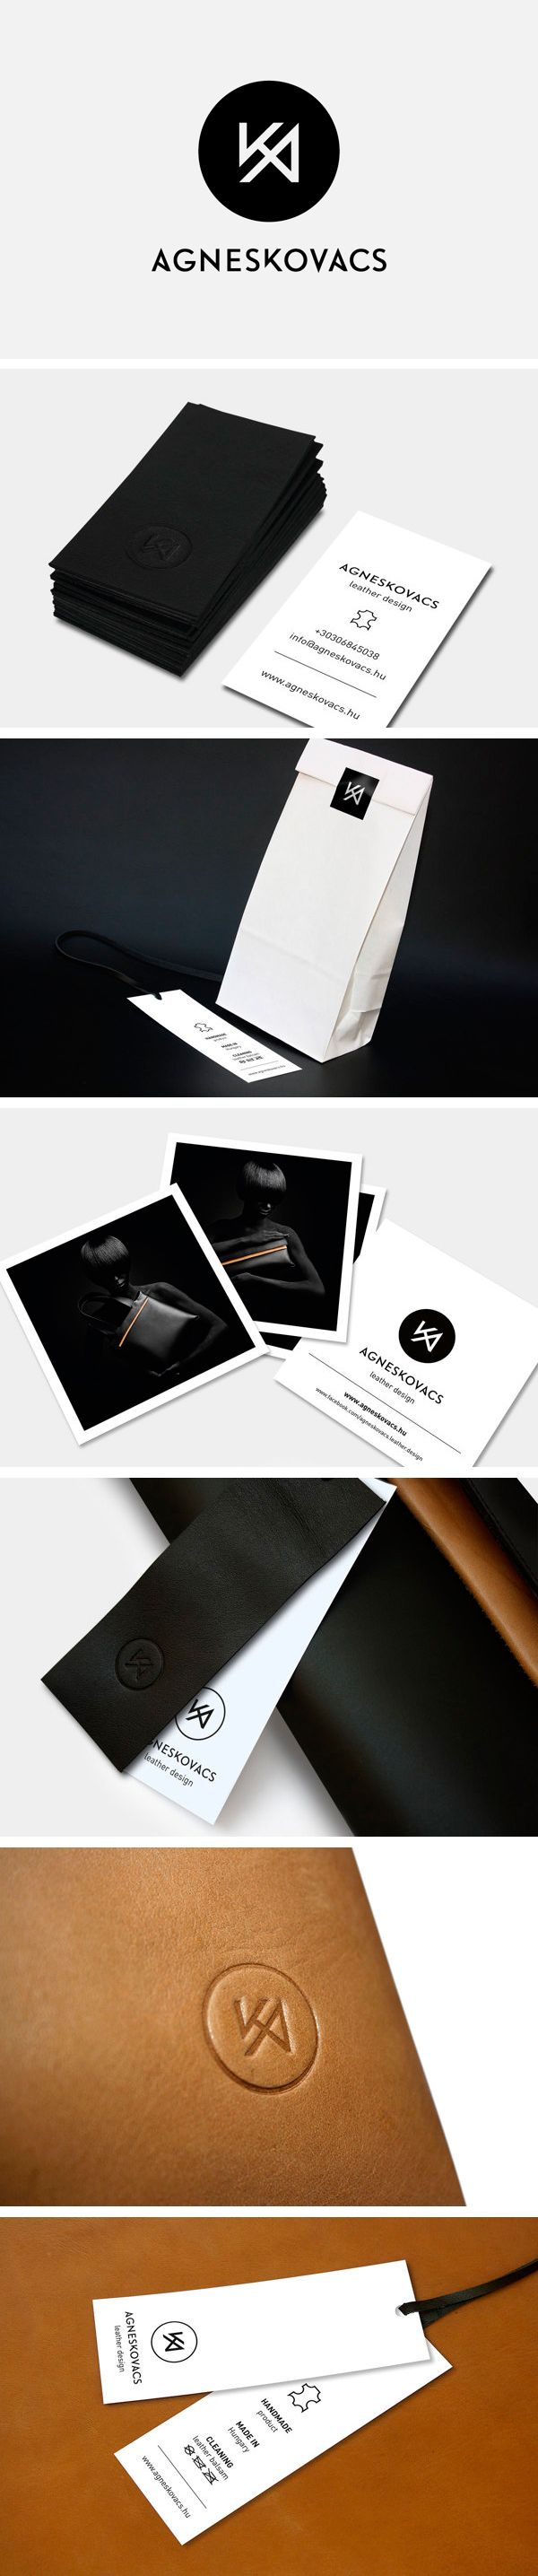 https://www.fiverr.com/aminulv/design-amazing-business-card-for-you